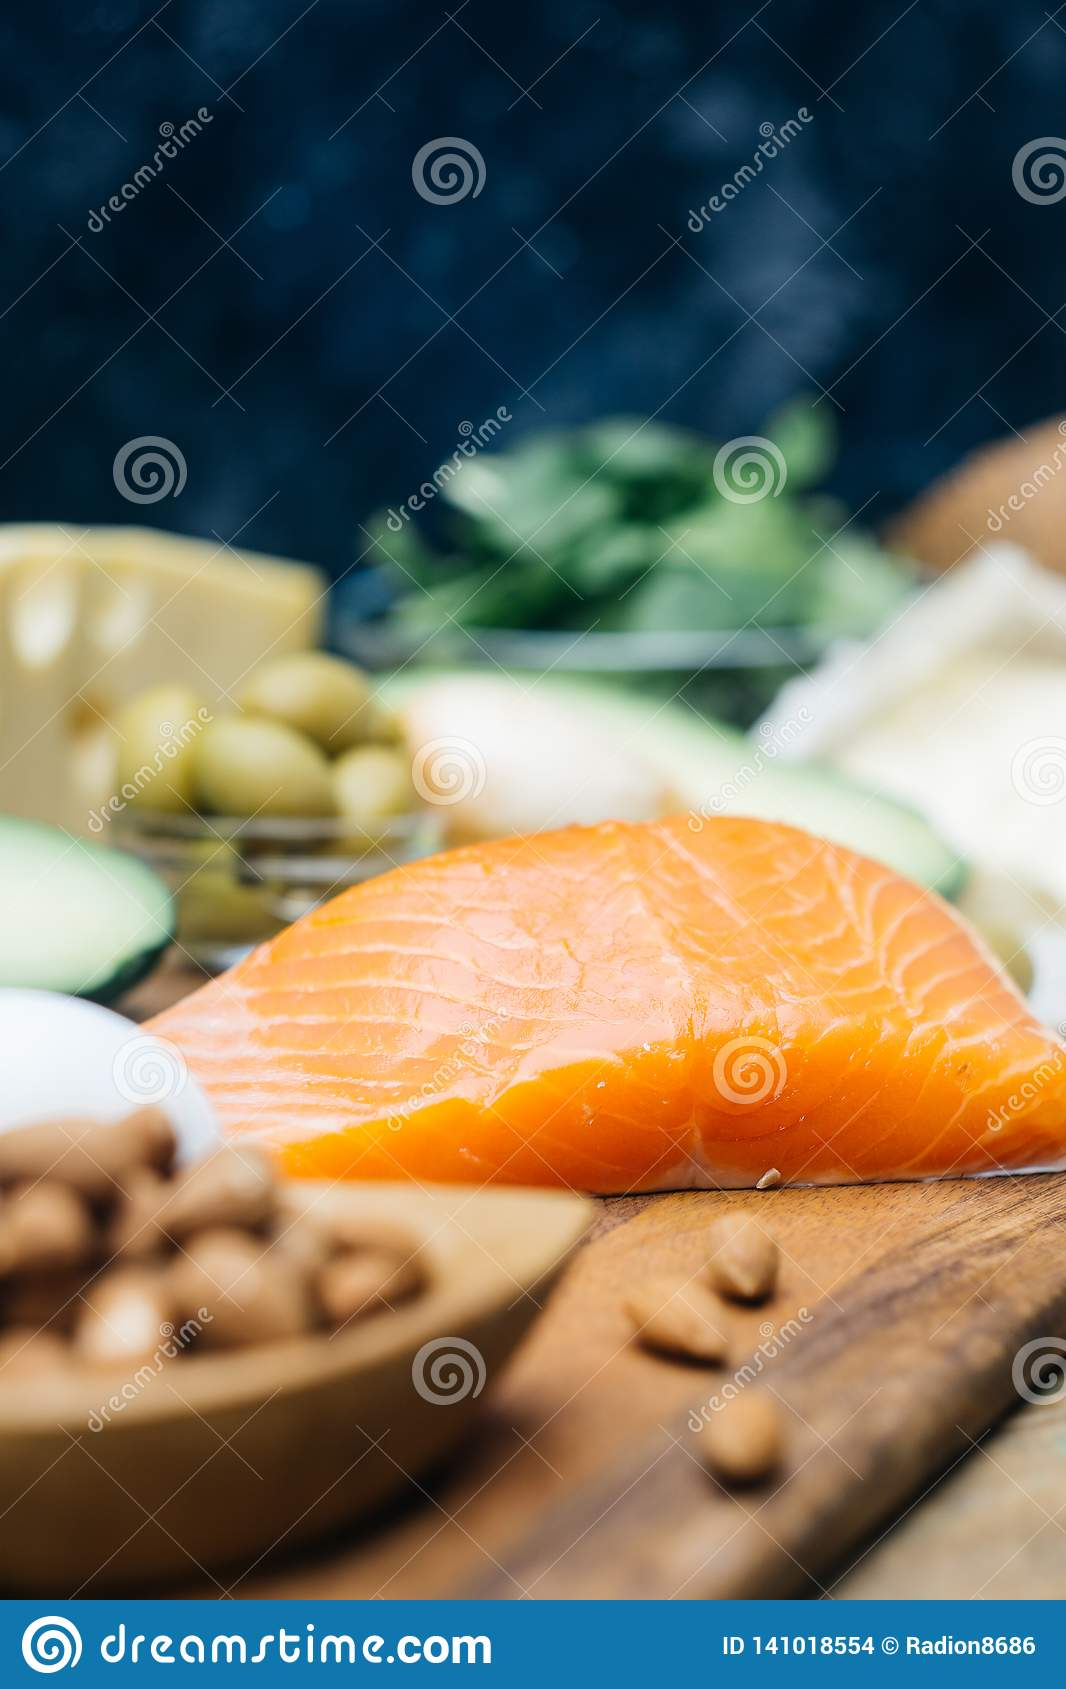 KETOGENIC DIET. Low carbs hight fat products. Healthy eating food, meal plan protein fat. Healthy nutrition. Keto lunch.